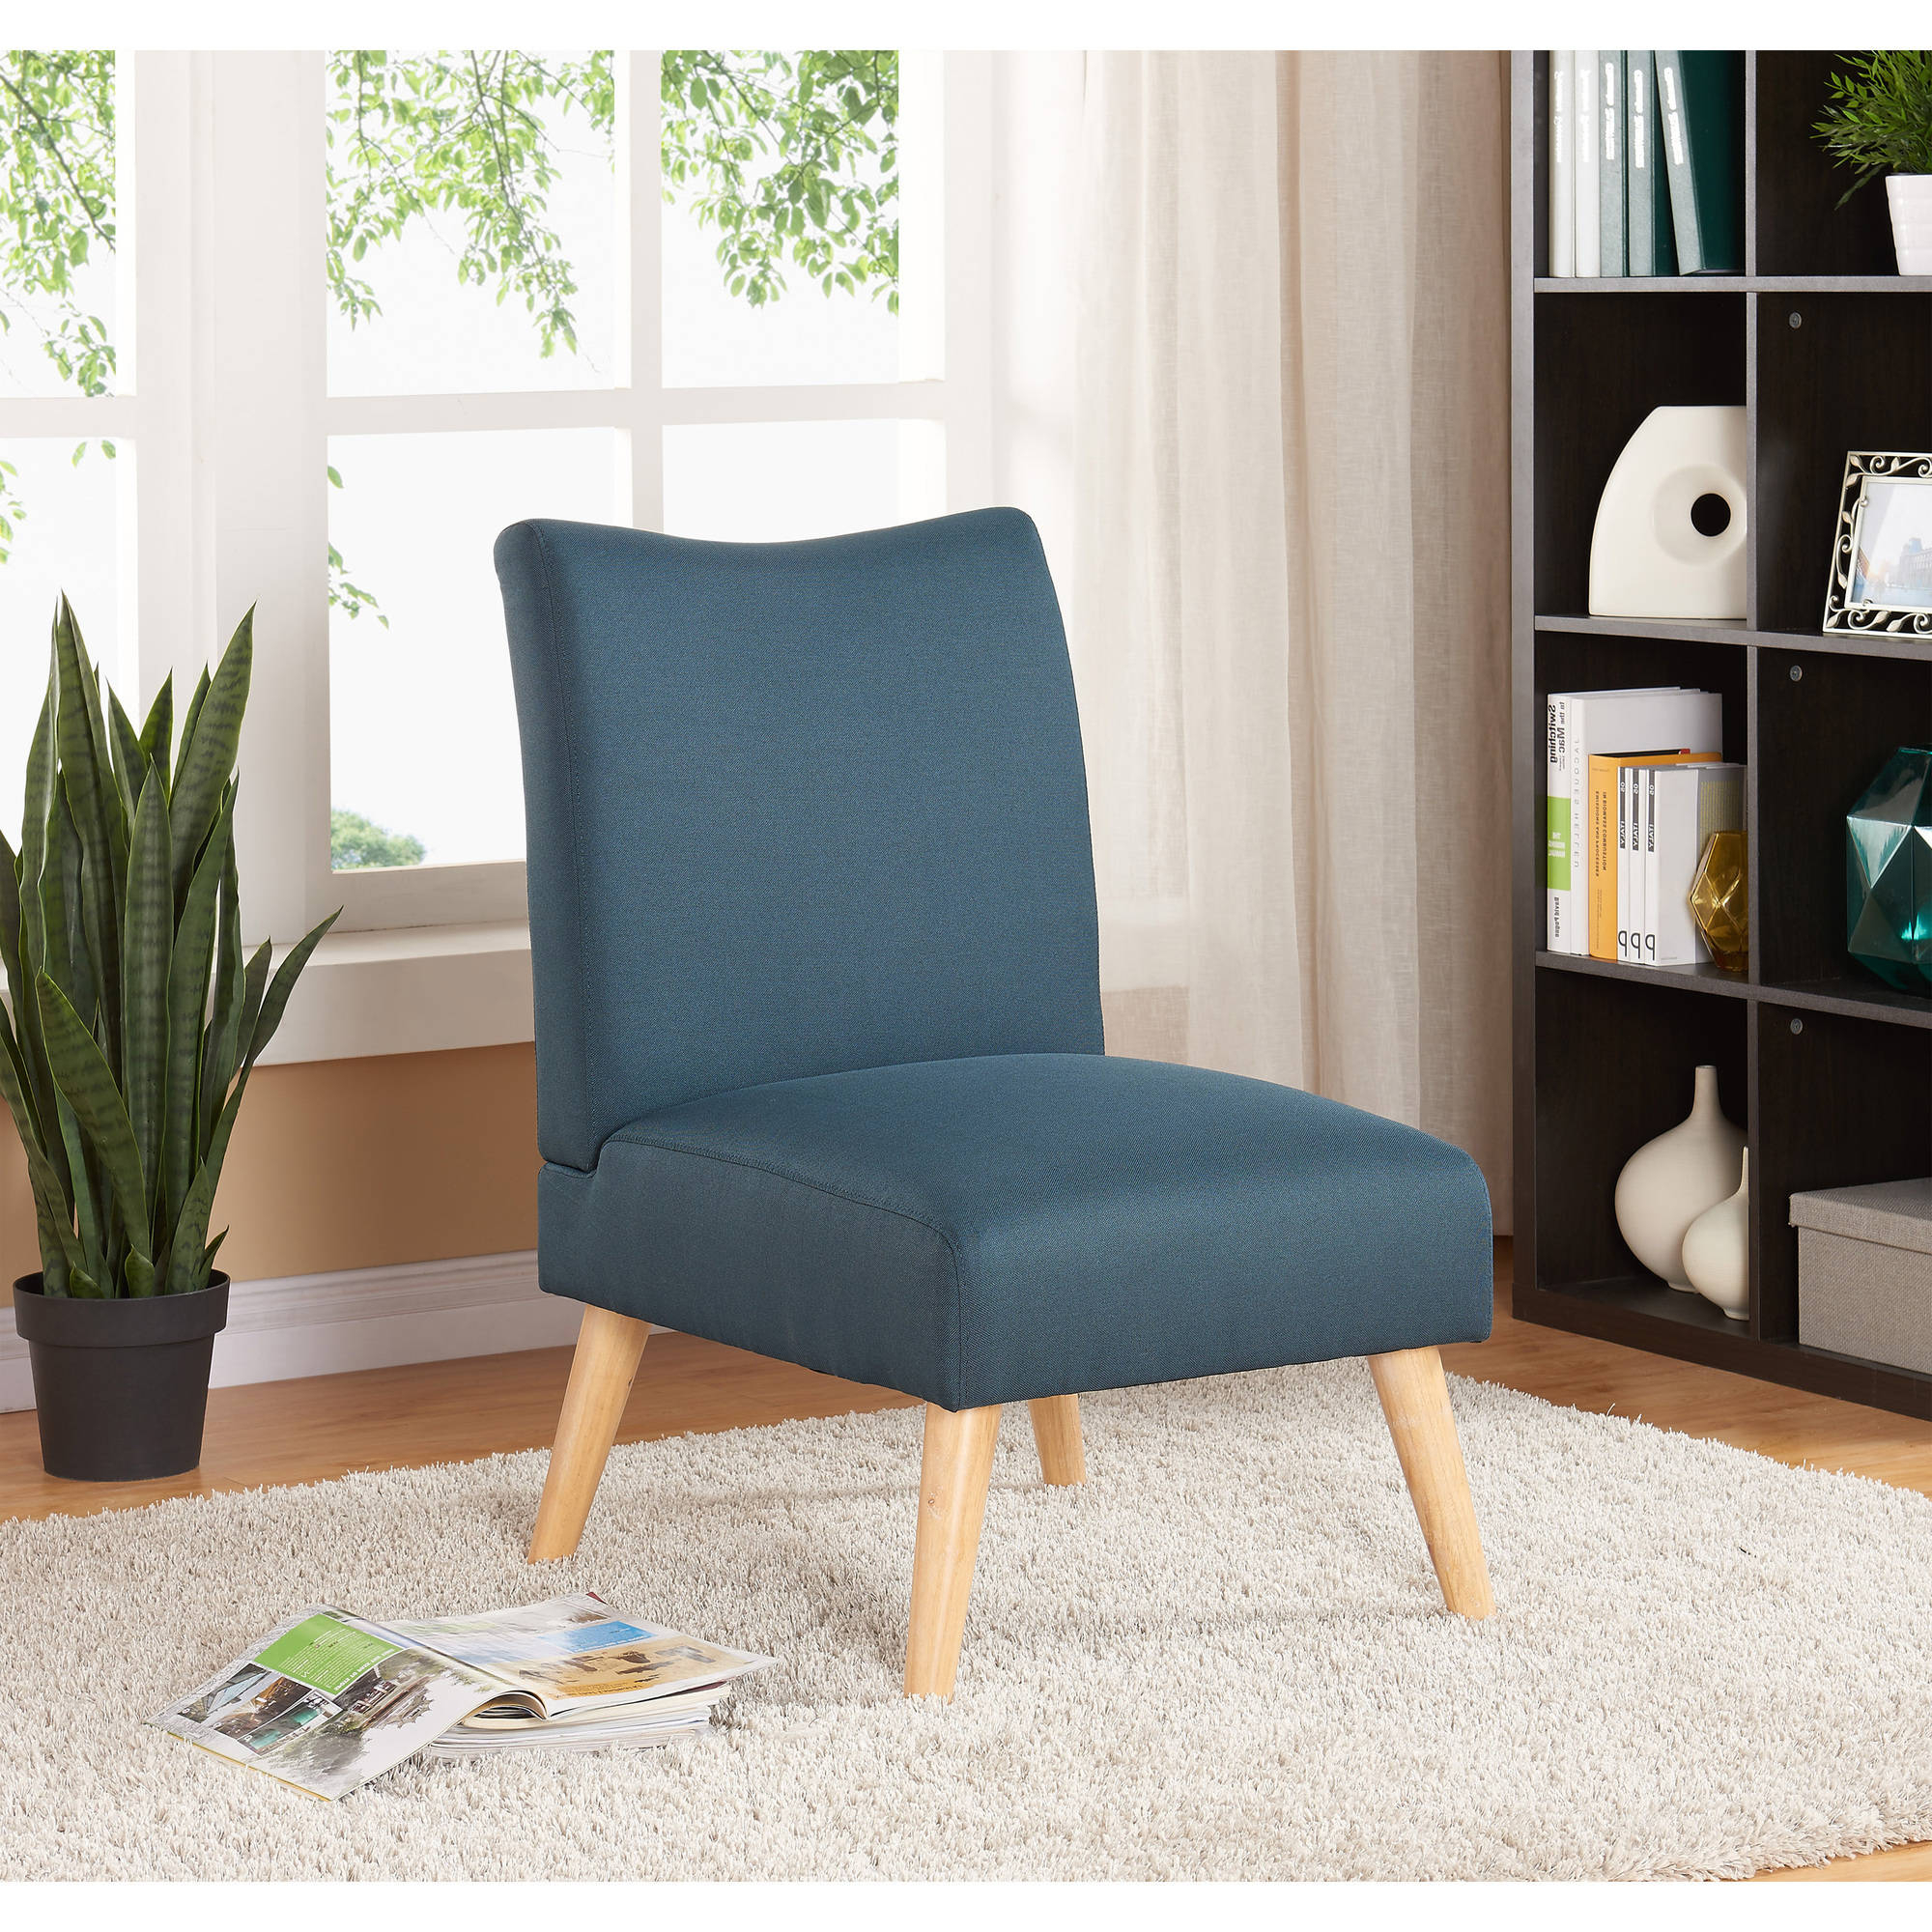 Best And Newest Mainstays Solid Armless Slipper Chair, Multiple Colors Within Goodyear Slipper Chairs (View 2 of 20)